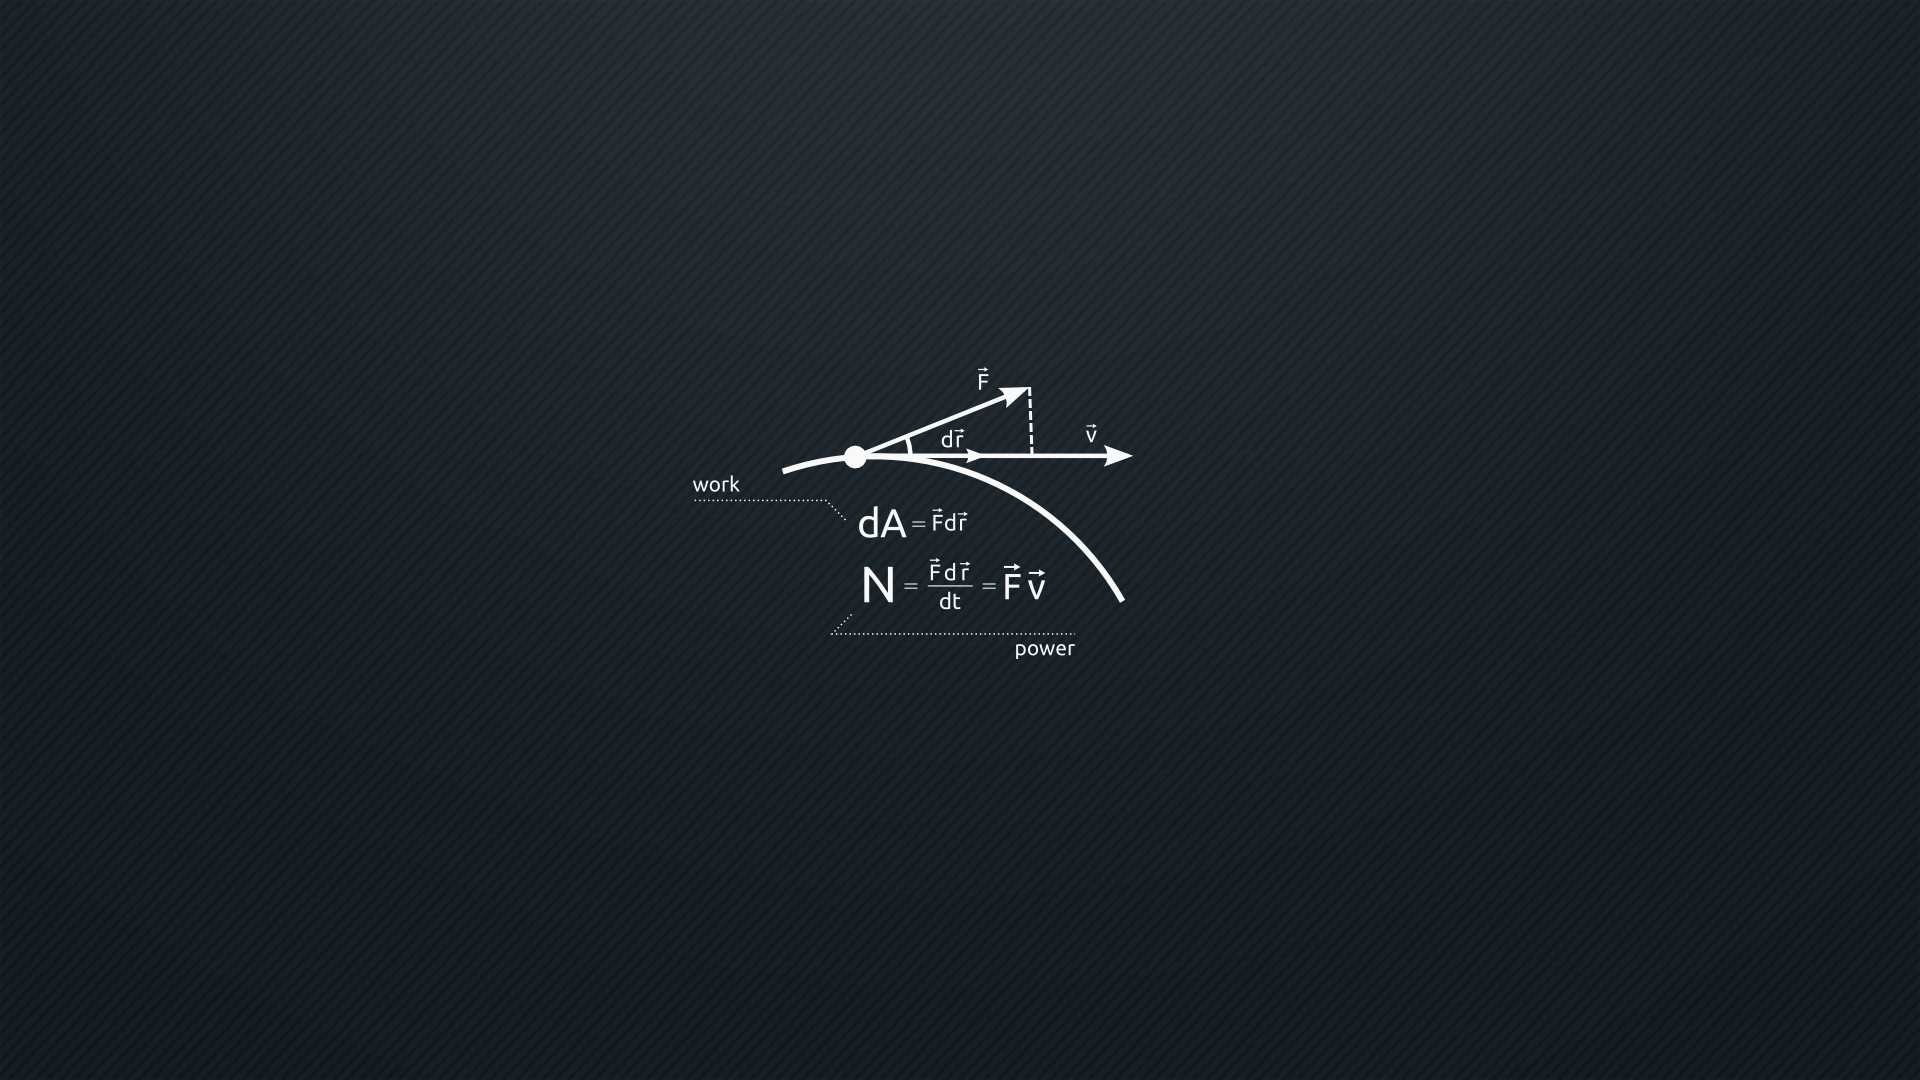 Pubg Minimalist Pophead Full Hd Wallpaper: Minimalist HD Wallpaper (83+ Images